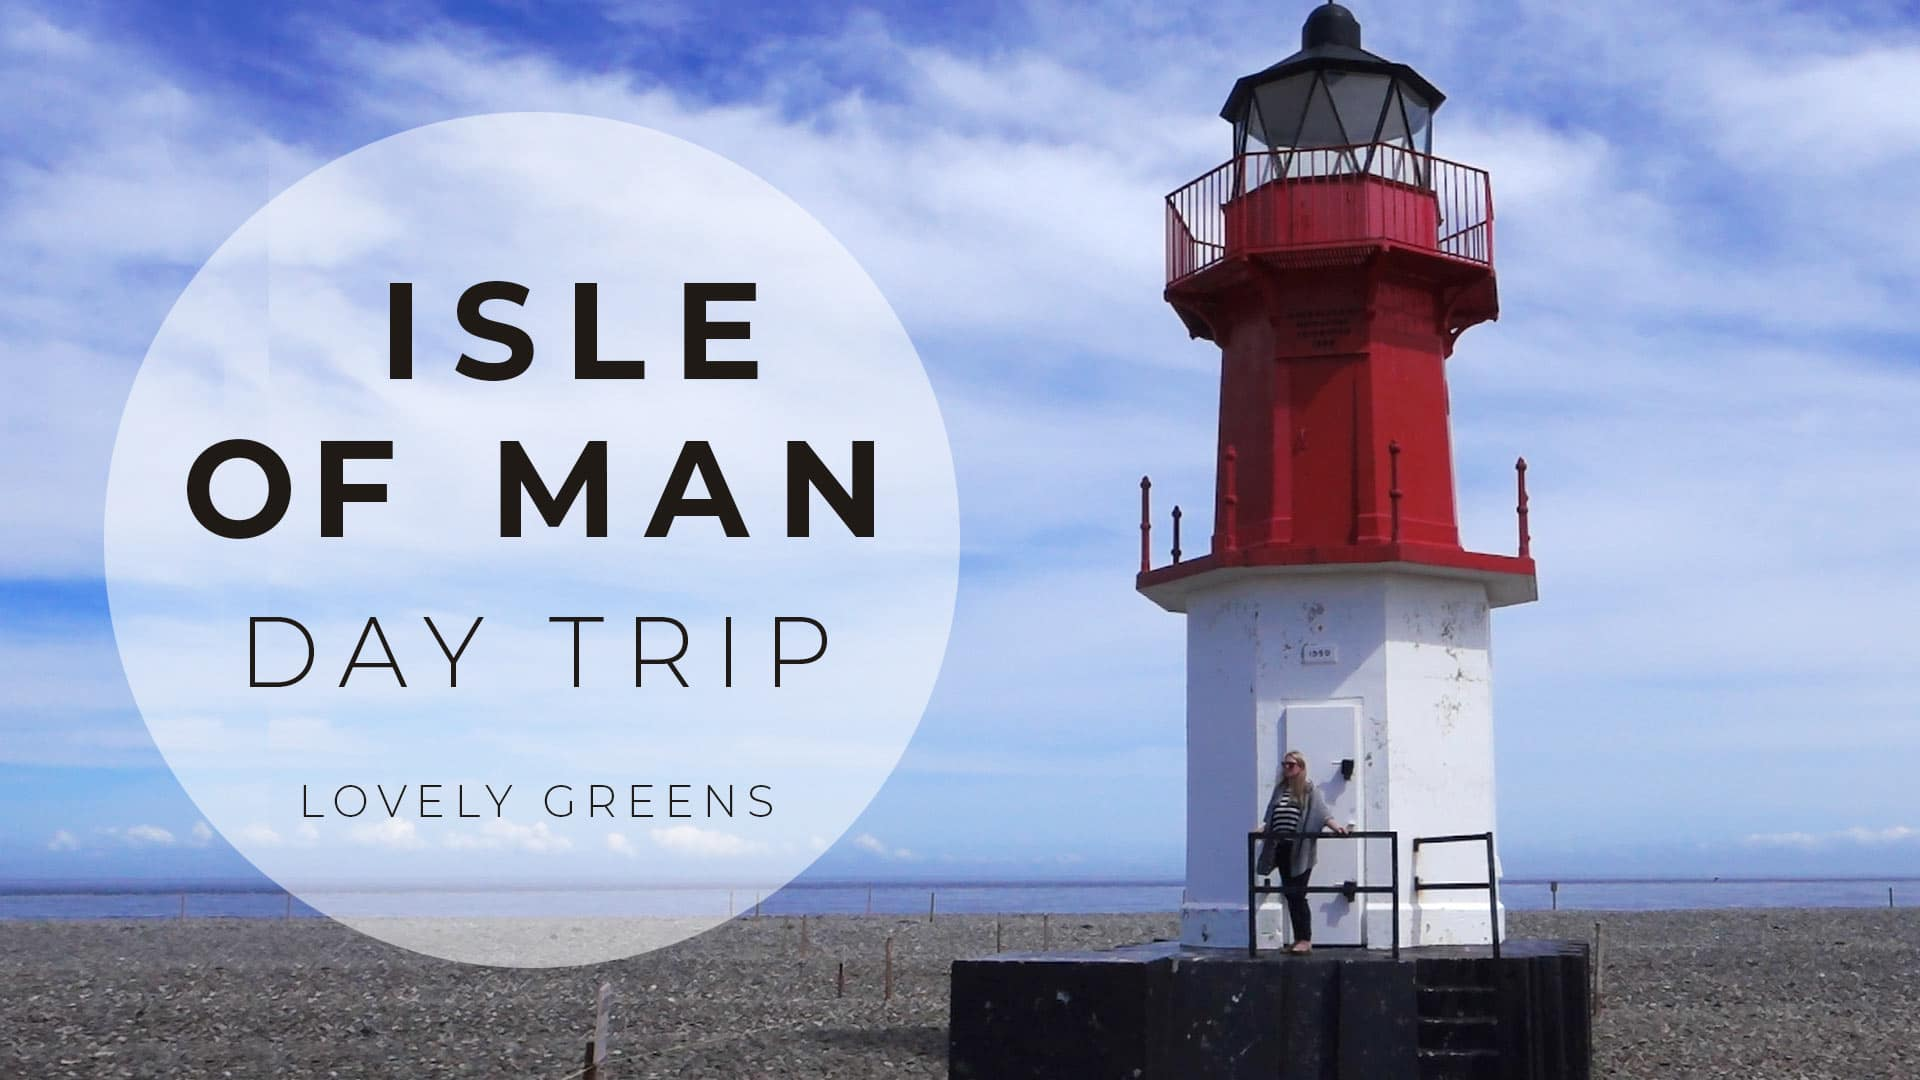 Day Trip around the Isle of Man — Beaches, Ancient sites, and a Viking Castle